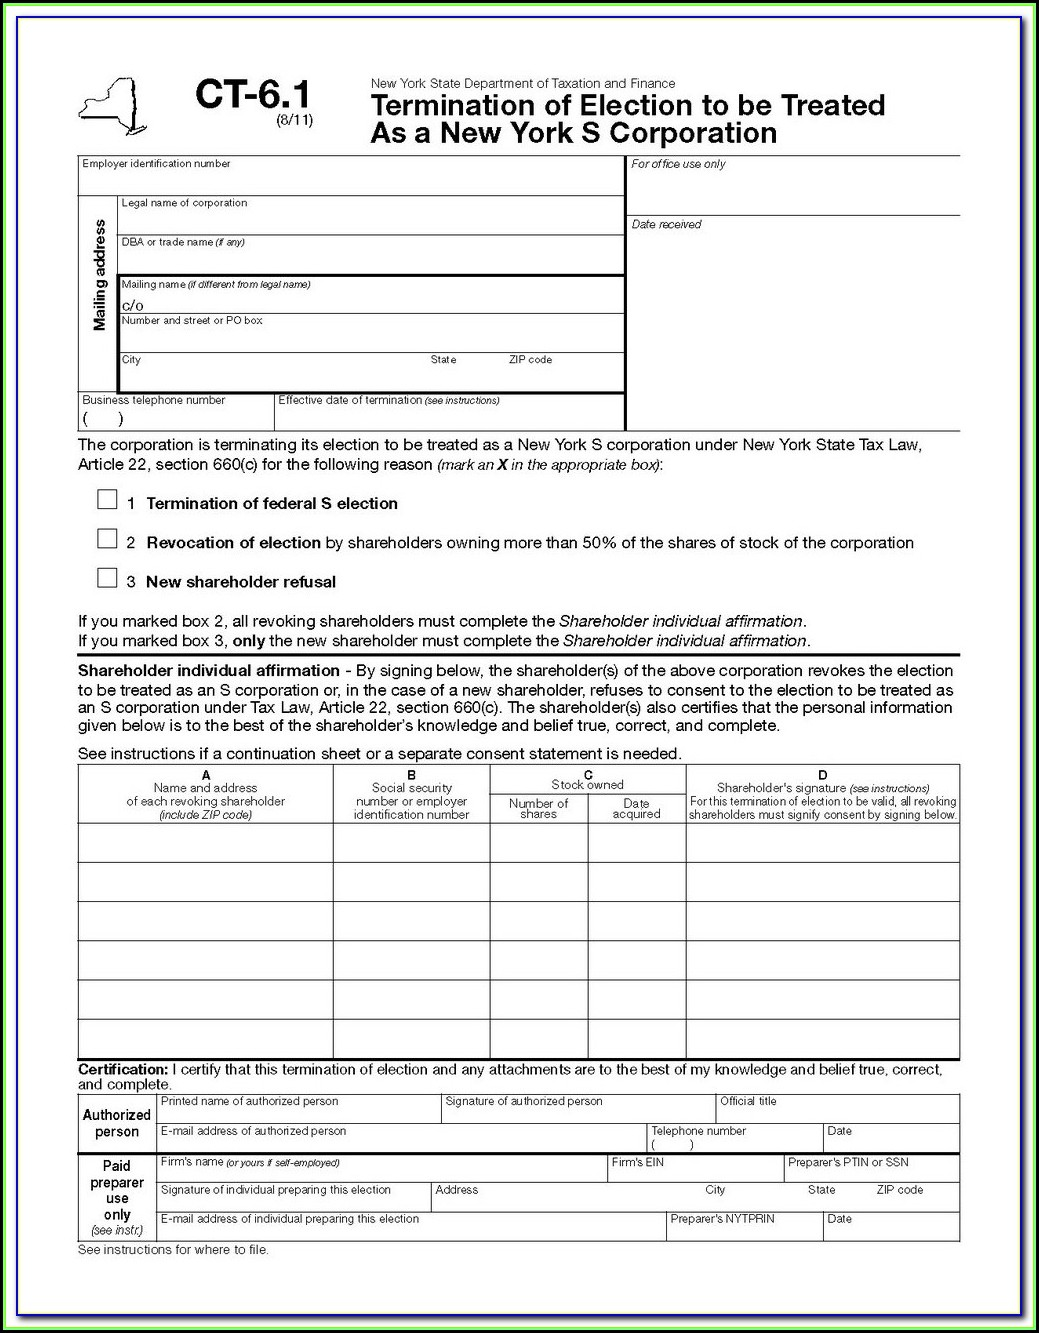 Irs Form 2290 Questions